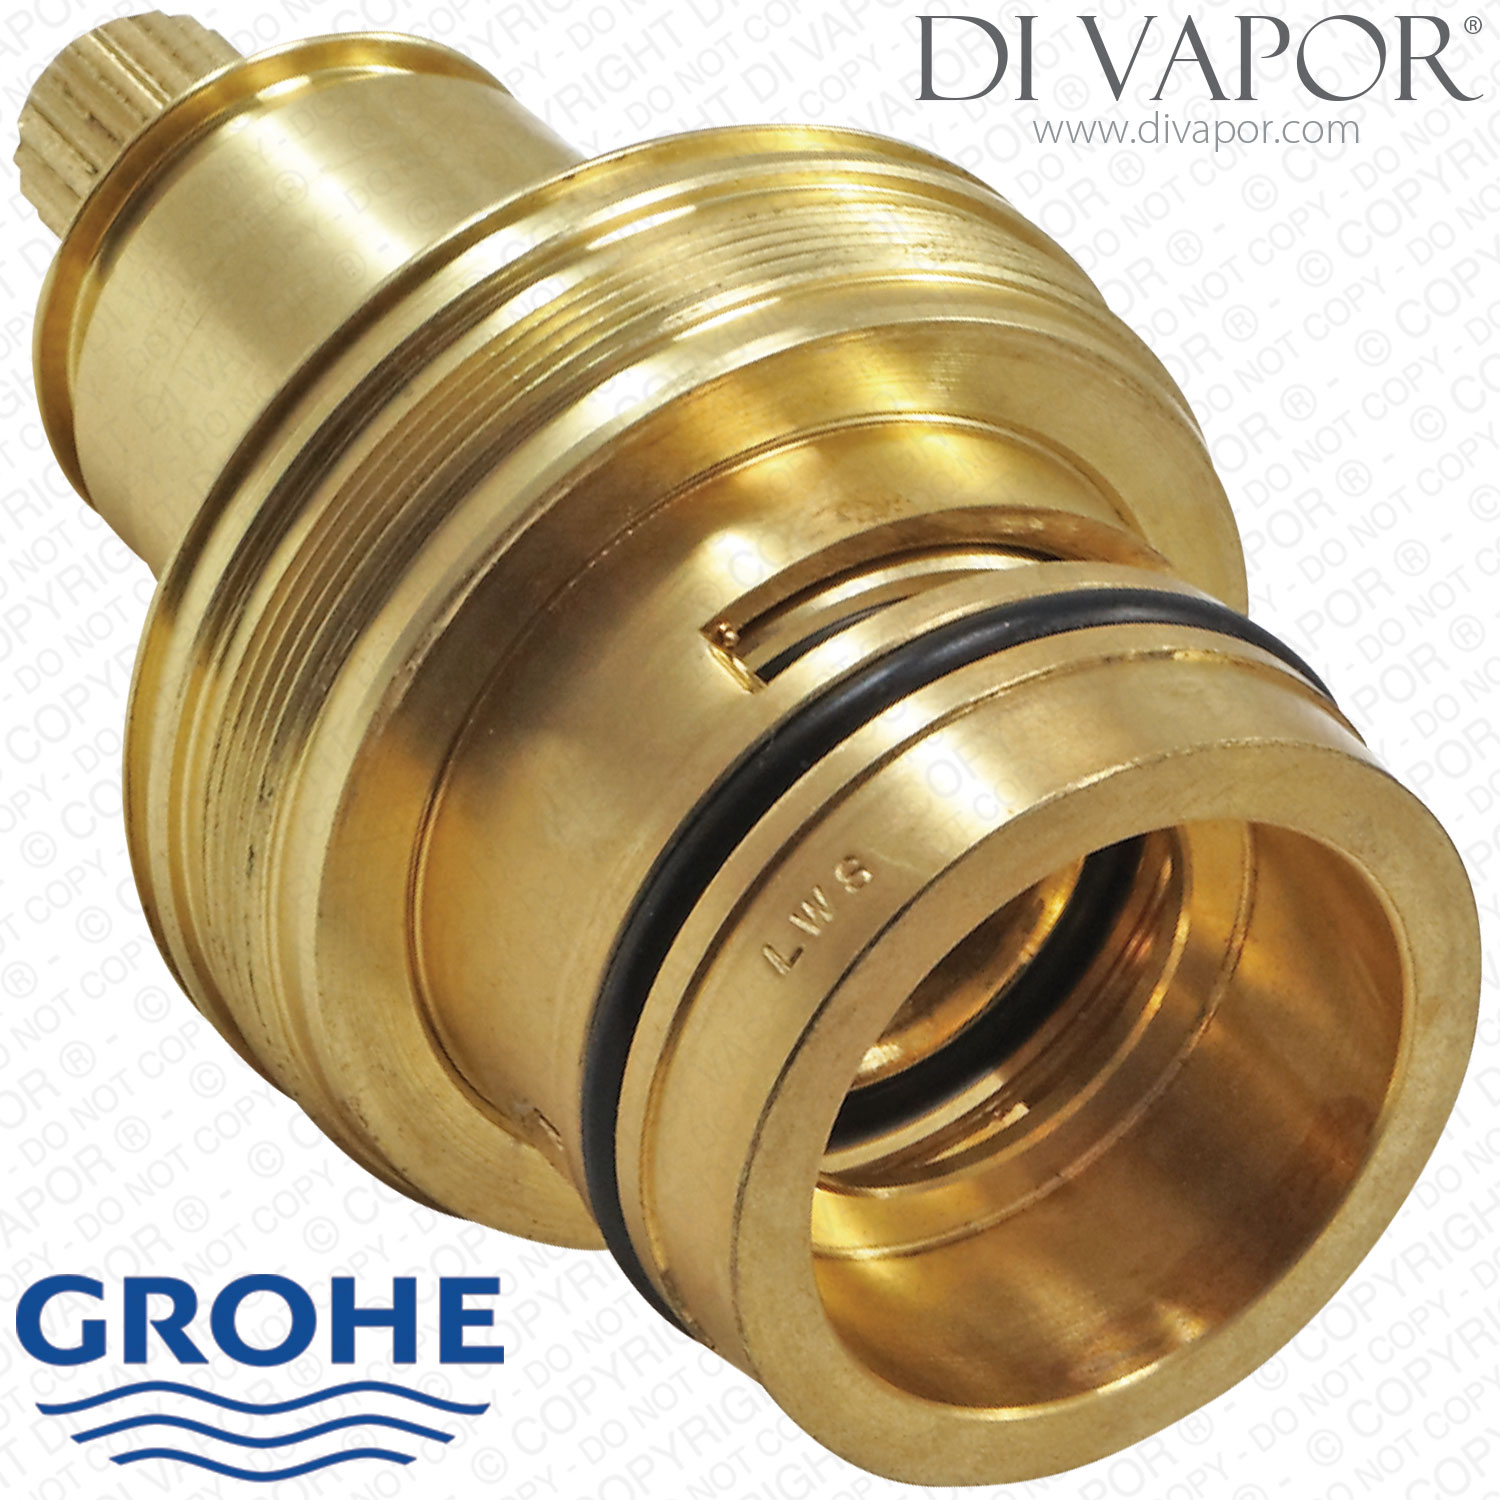 grohe 47600000 thermostatic cartridge with shuttle piston and wax